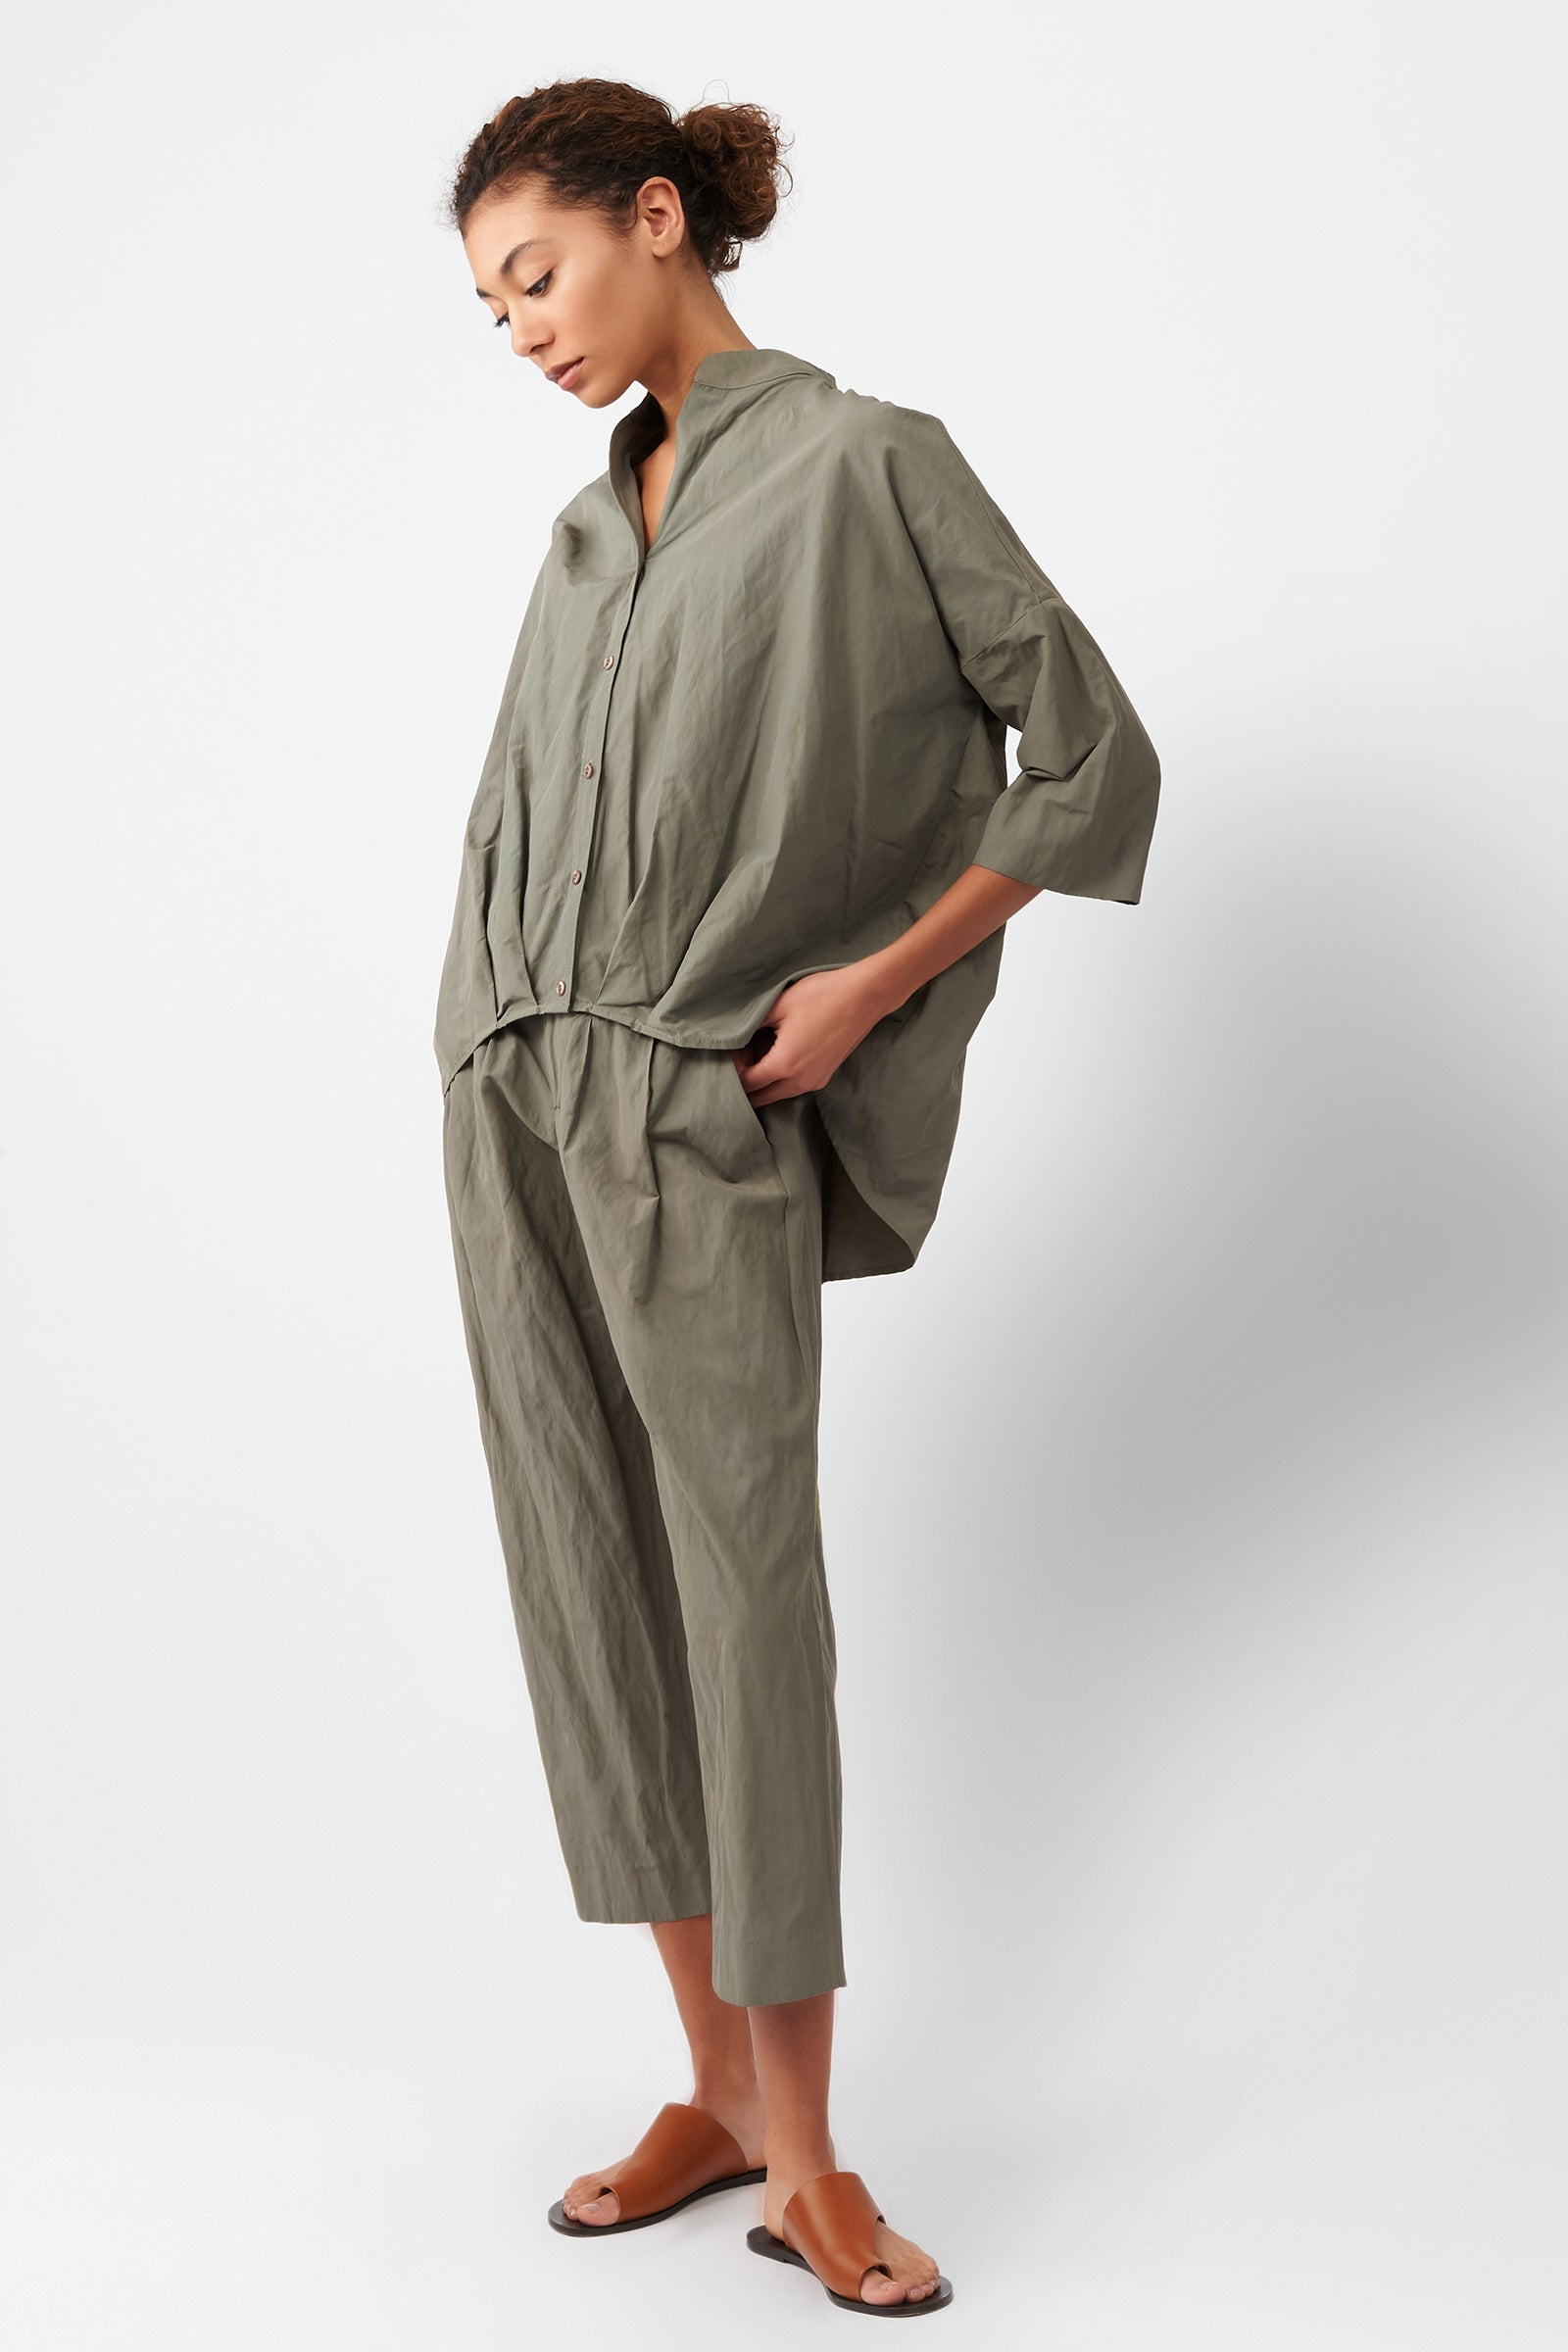 Kal Rieman Pleat Hem Kimono in Olive on Model Full Side View